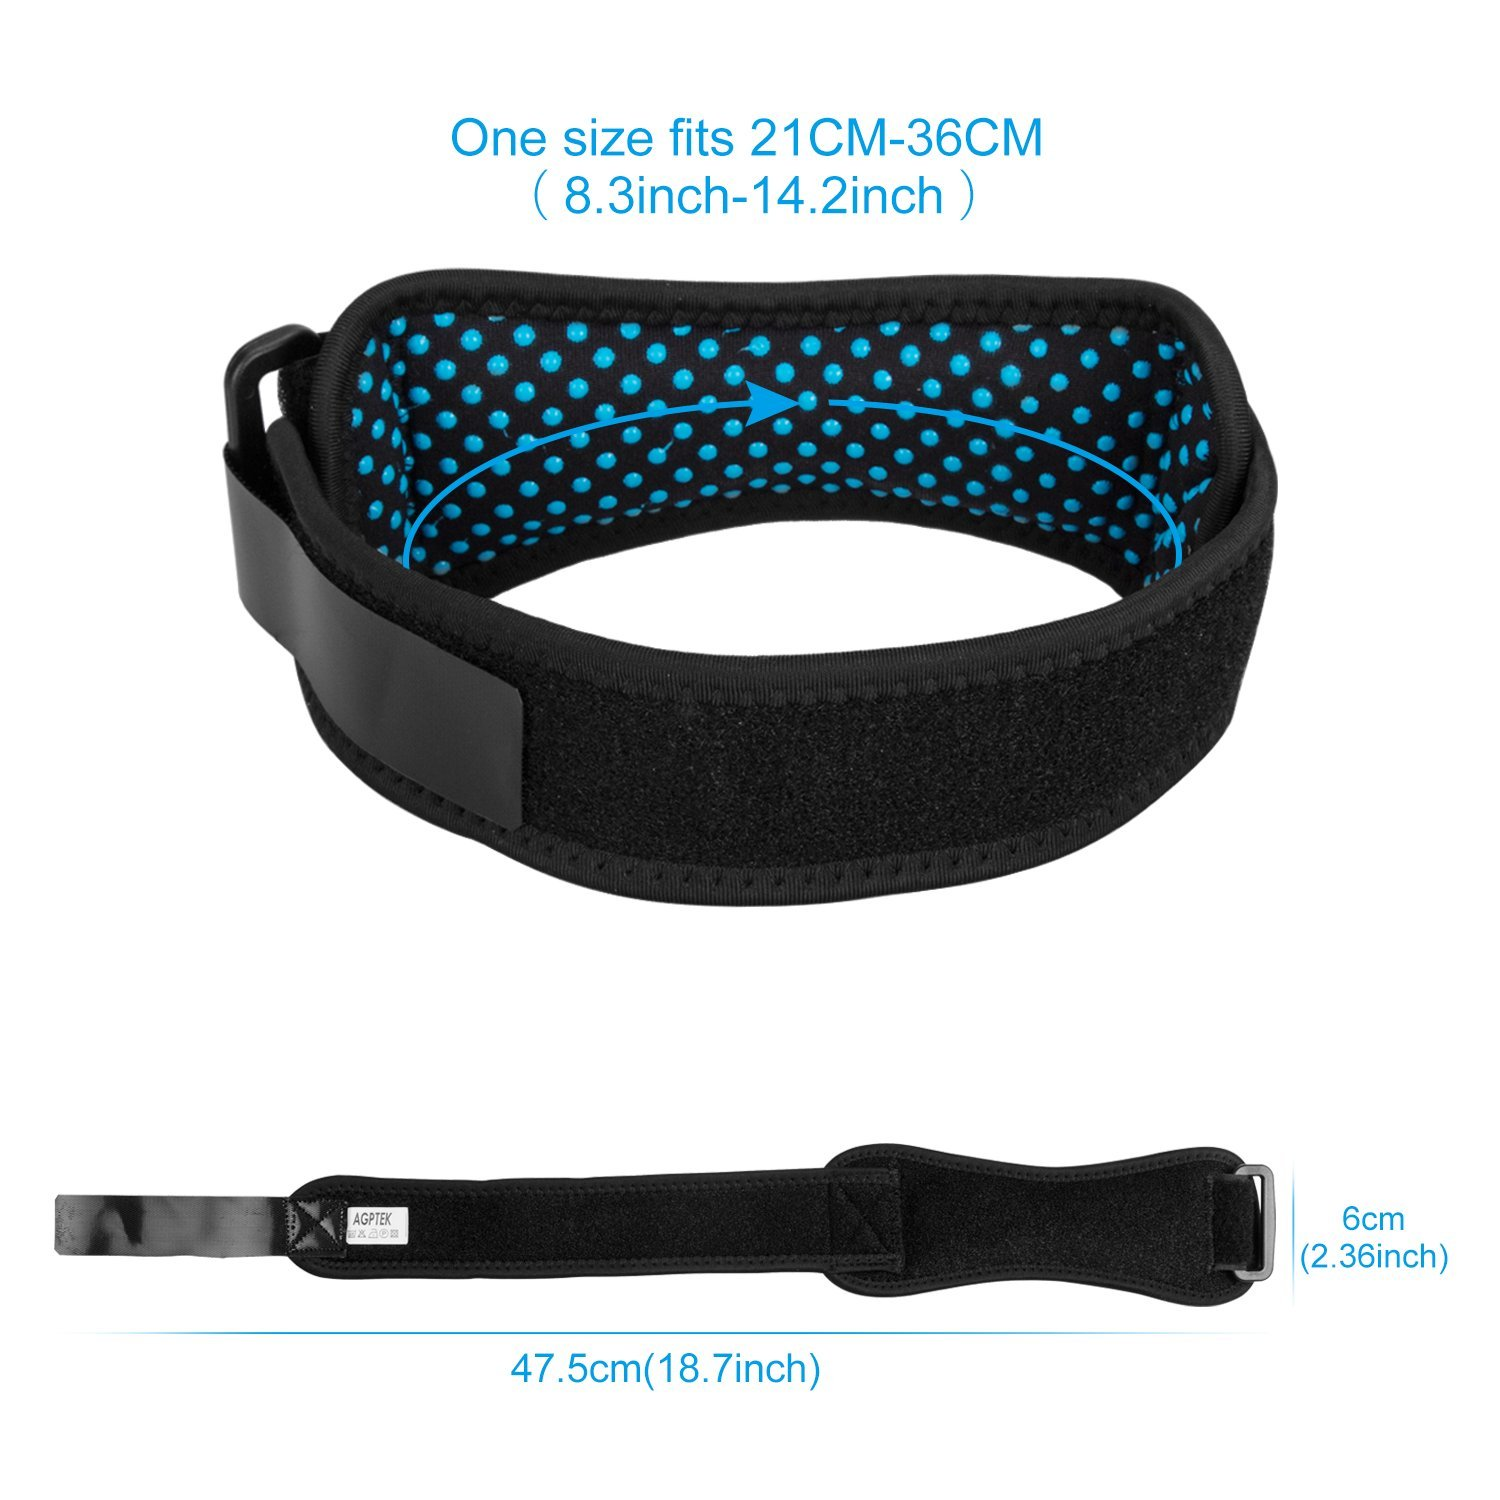 Black Anti-slip Knee Pain Relief Band with Silicone Pad for Basketball Volleyball Running Hiking AGPTEK 2 Pack Patella Knee Strap Tennis etc